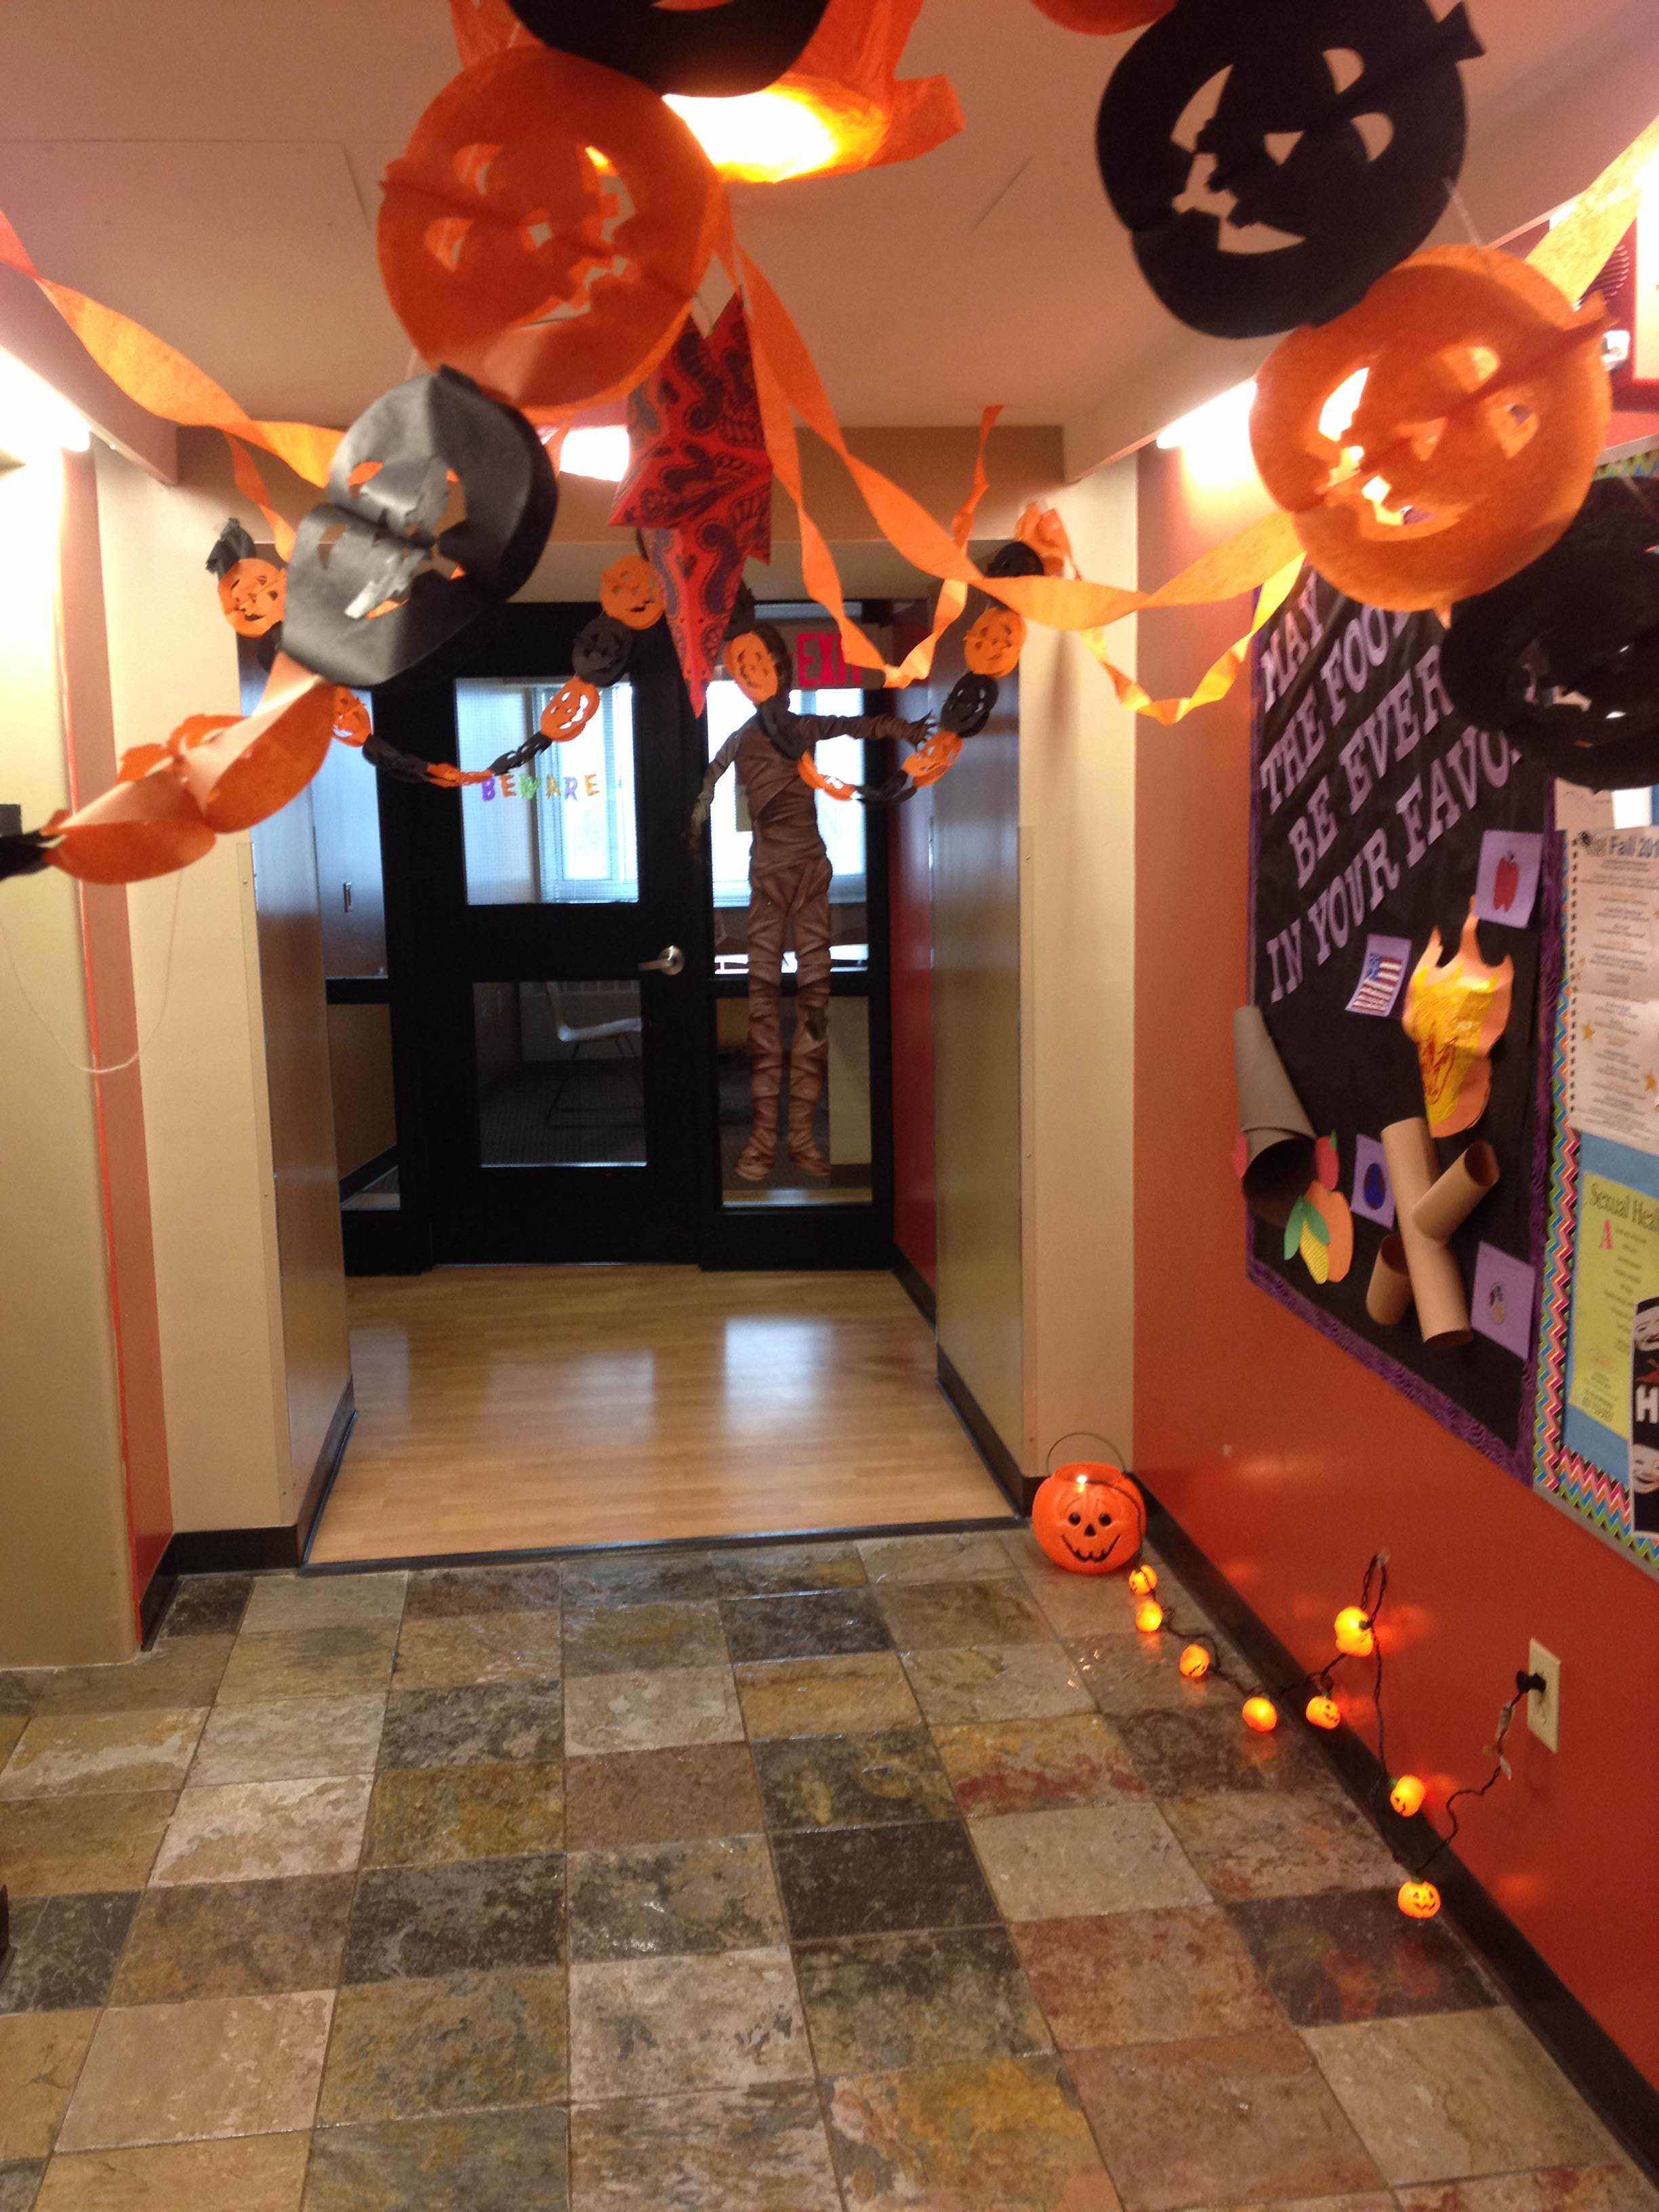 A residence hallway with halloween decorations